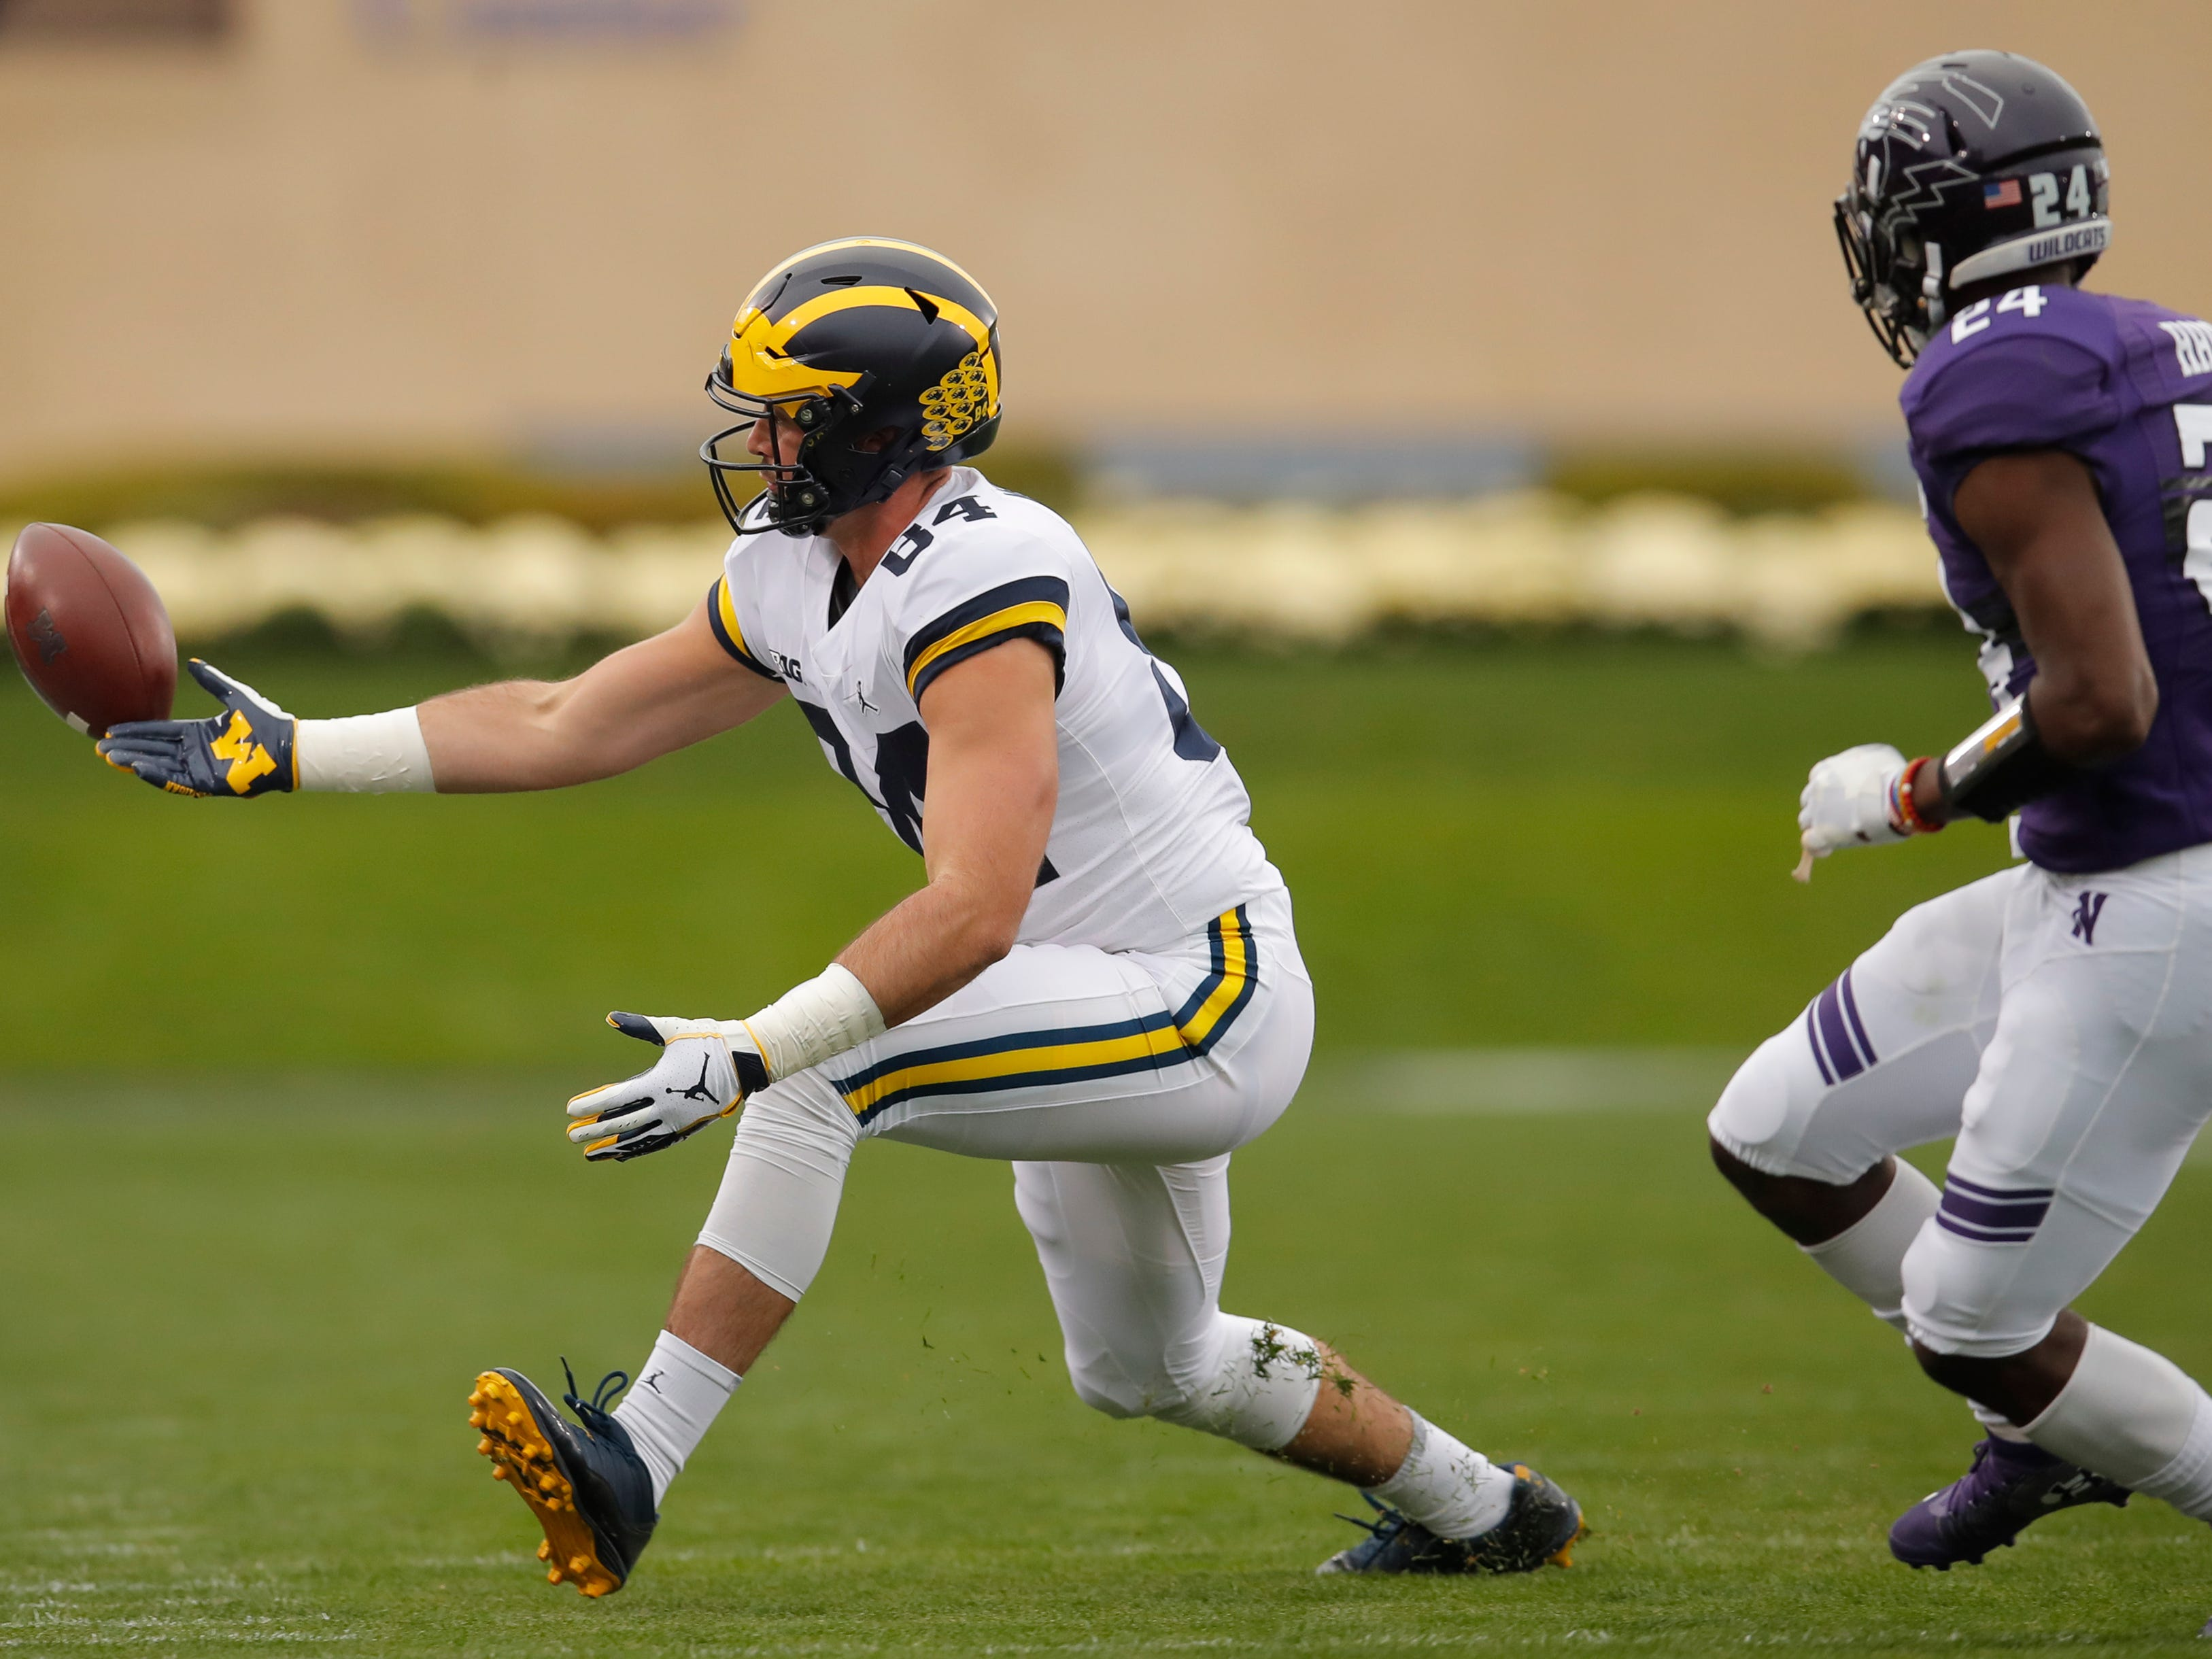 Michigan's Sean McKeon drops a pass as he is guarded by Northwestern's Montre Hartage during the first half Saturday, Sept. 29, 2018, in Evanston, Ill.